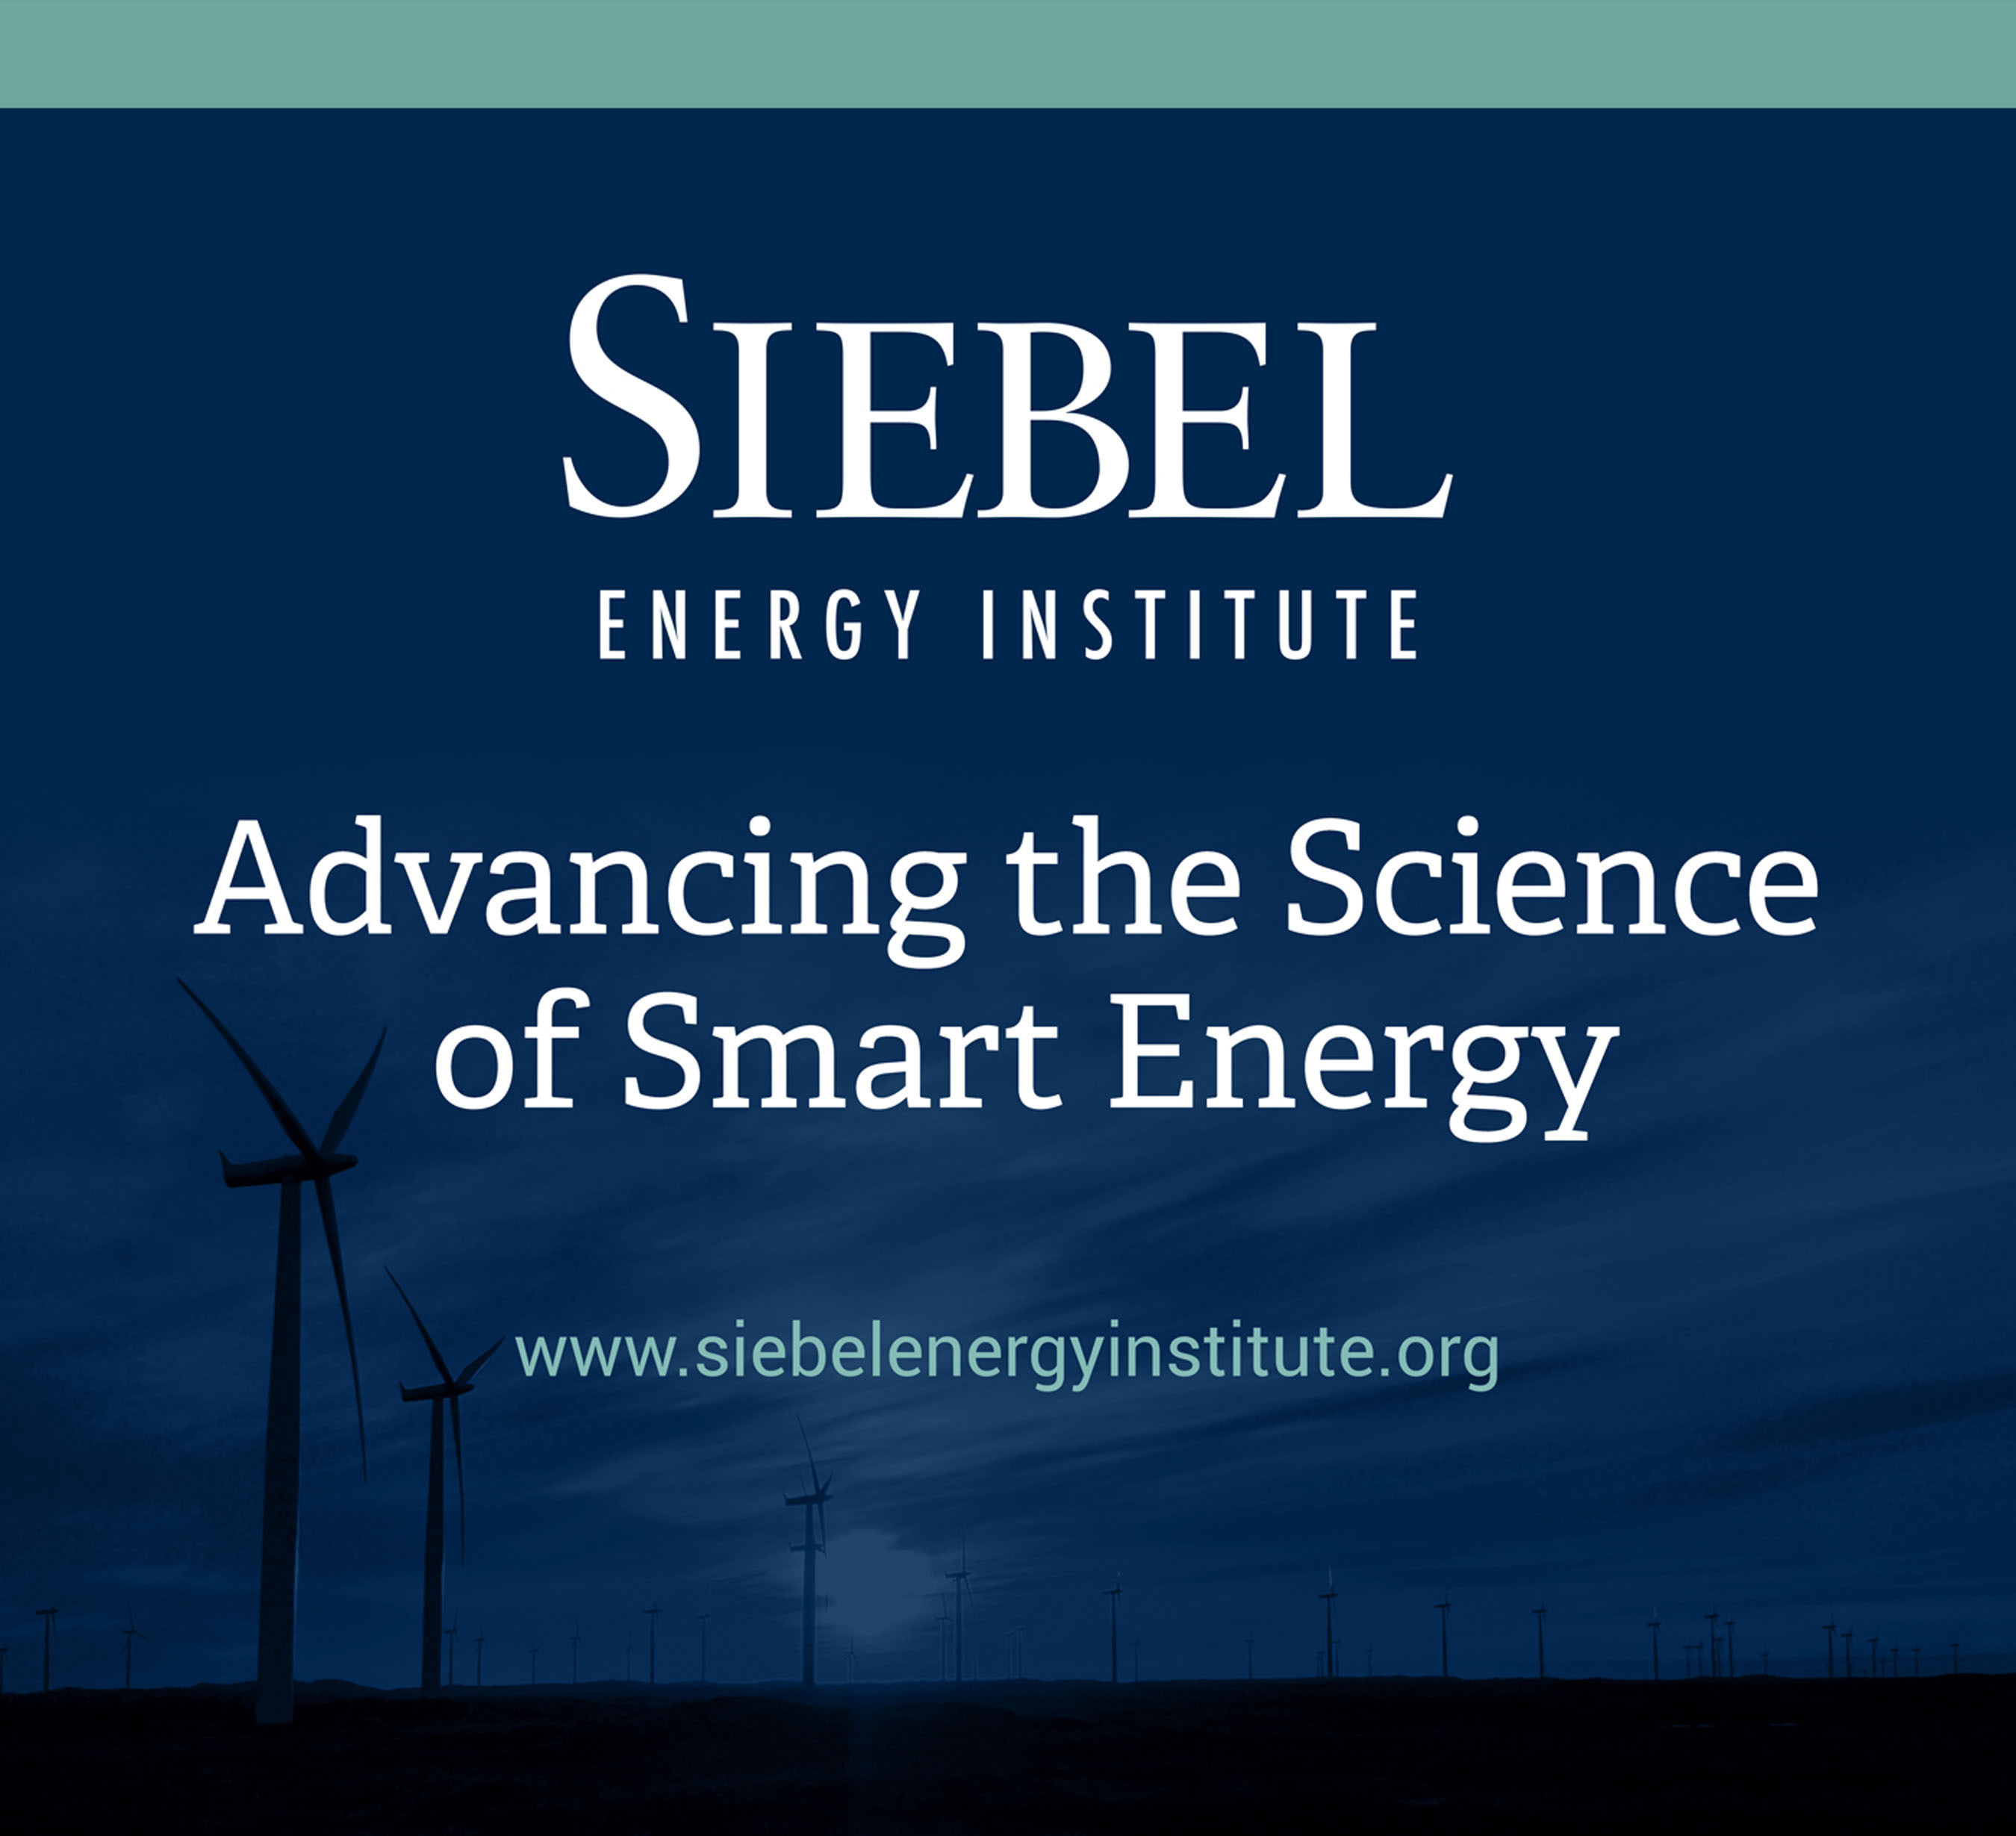 Siebel Energy Institute Established with $10 Million Grant